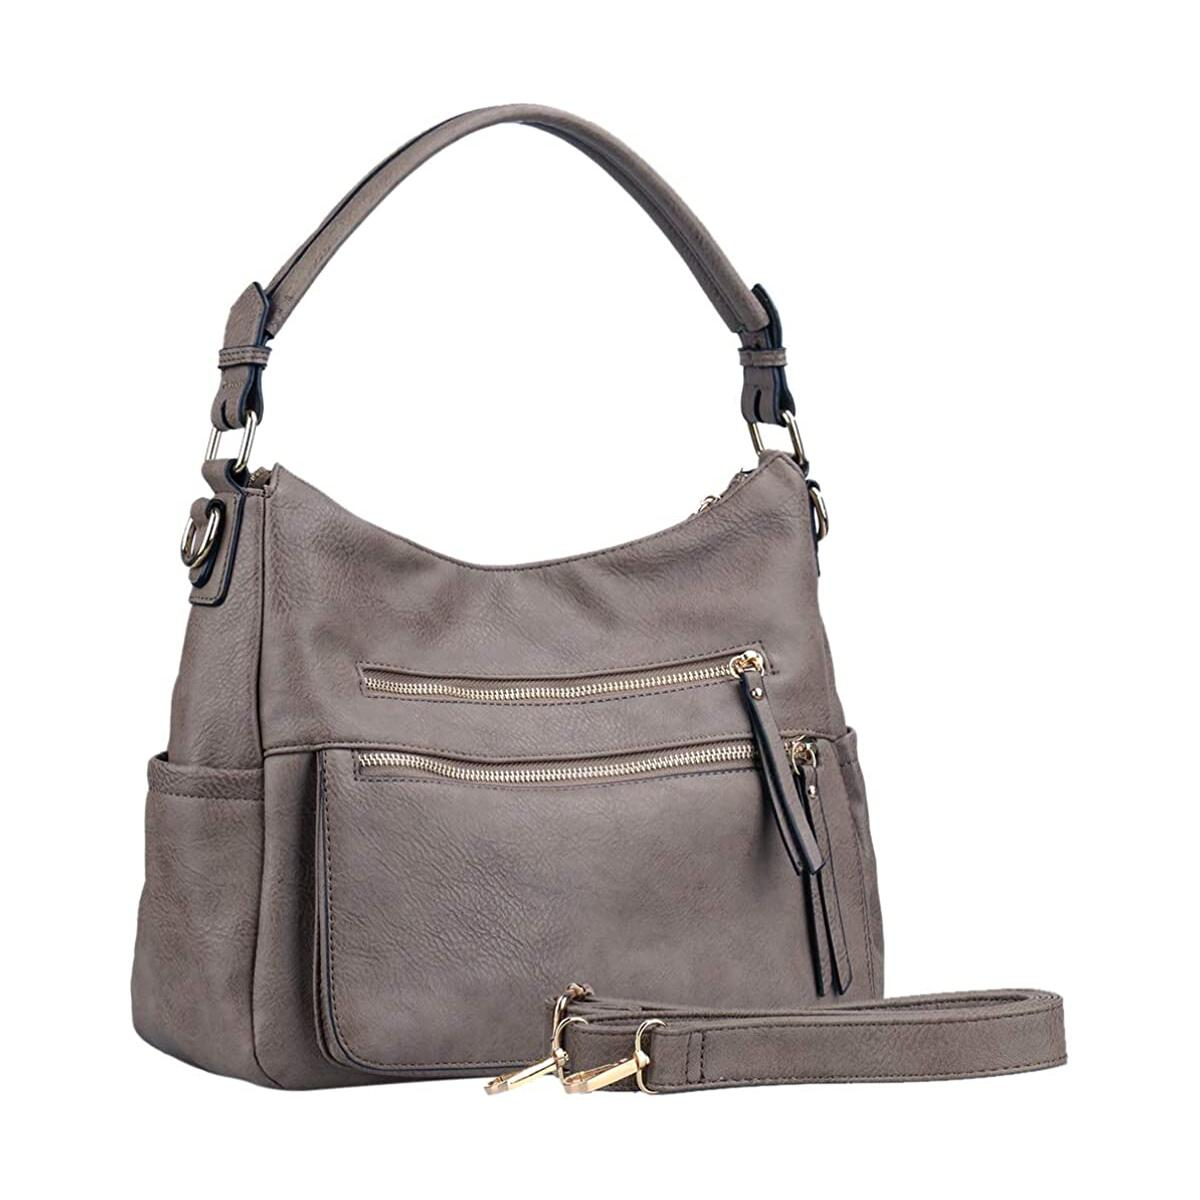 Handbags For Women-UTAKE Hobo Shoulder Purse PU Leather Top Handle Satchel Large Muti-pocket Tote Bags Grey Brown